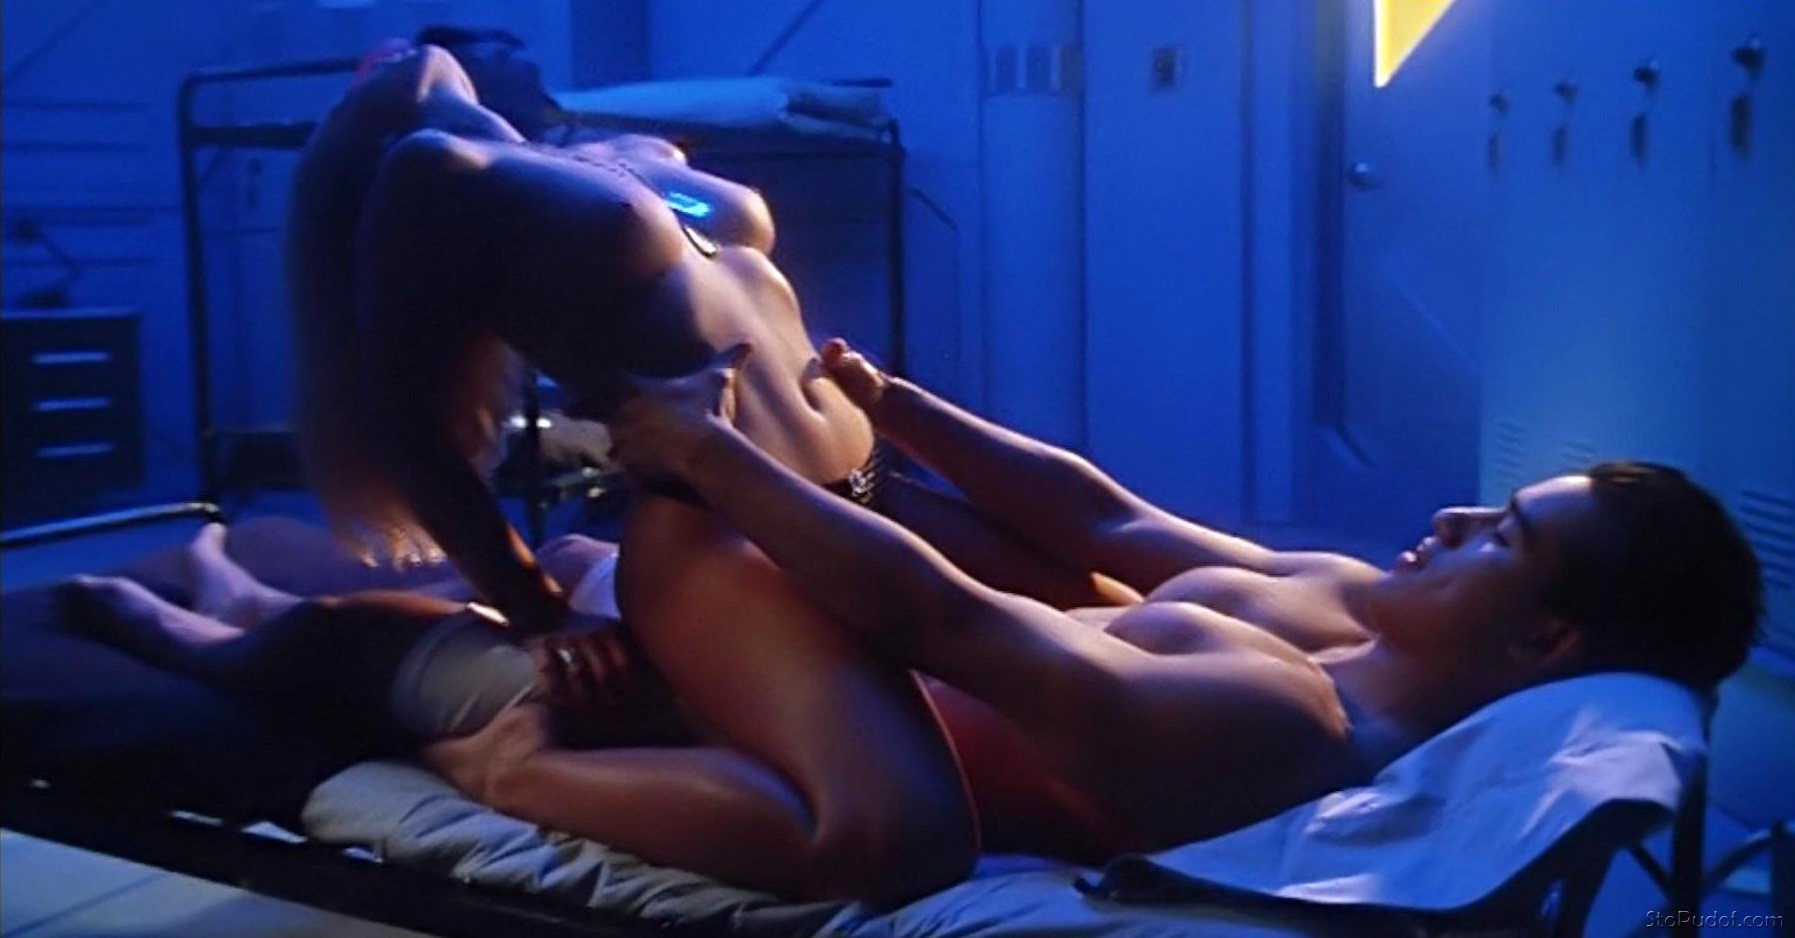 Jaime pressley sex scene think